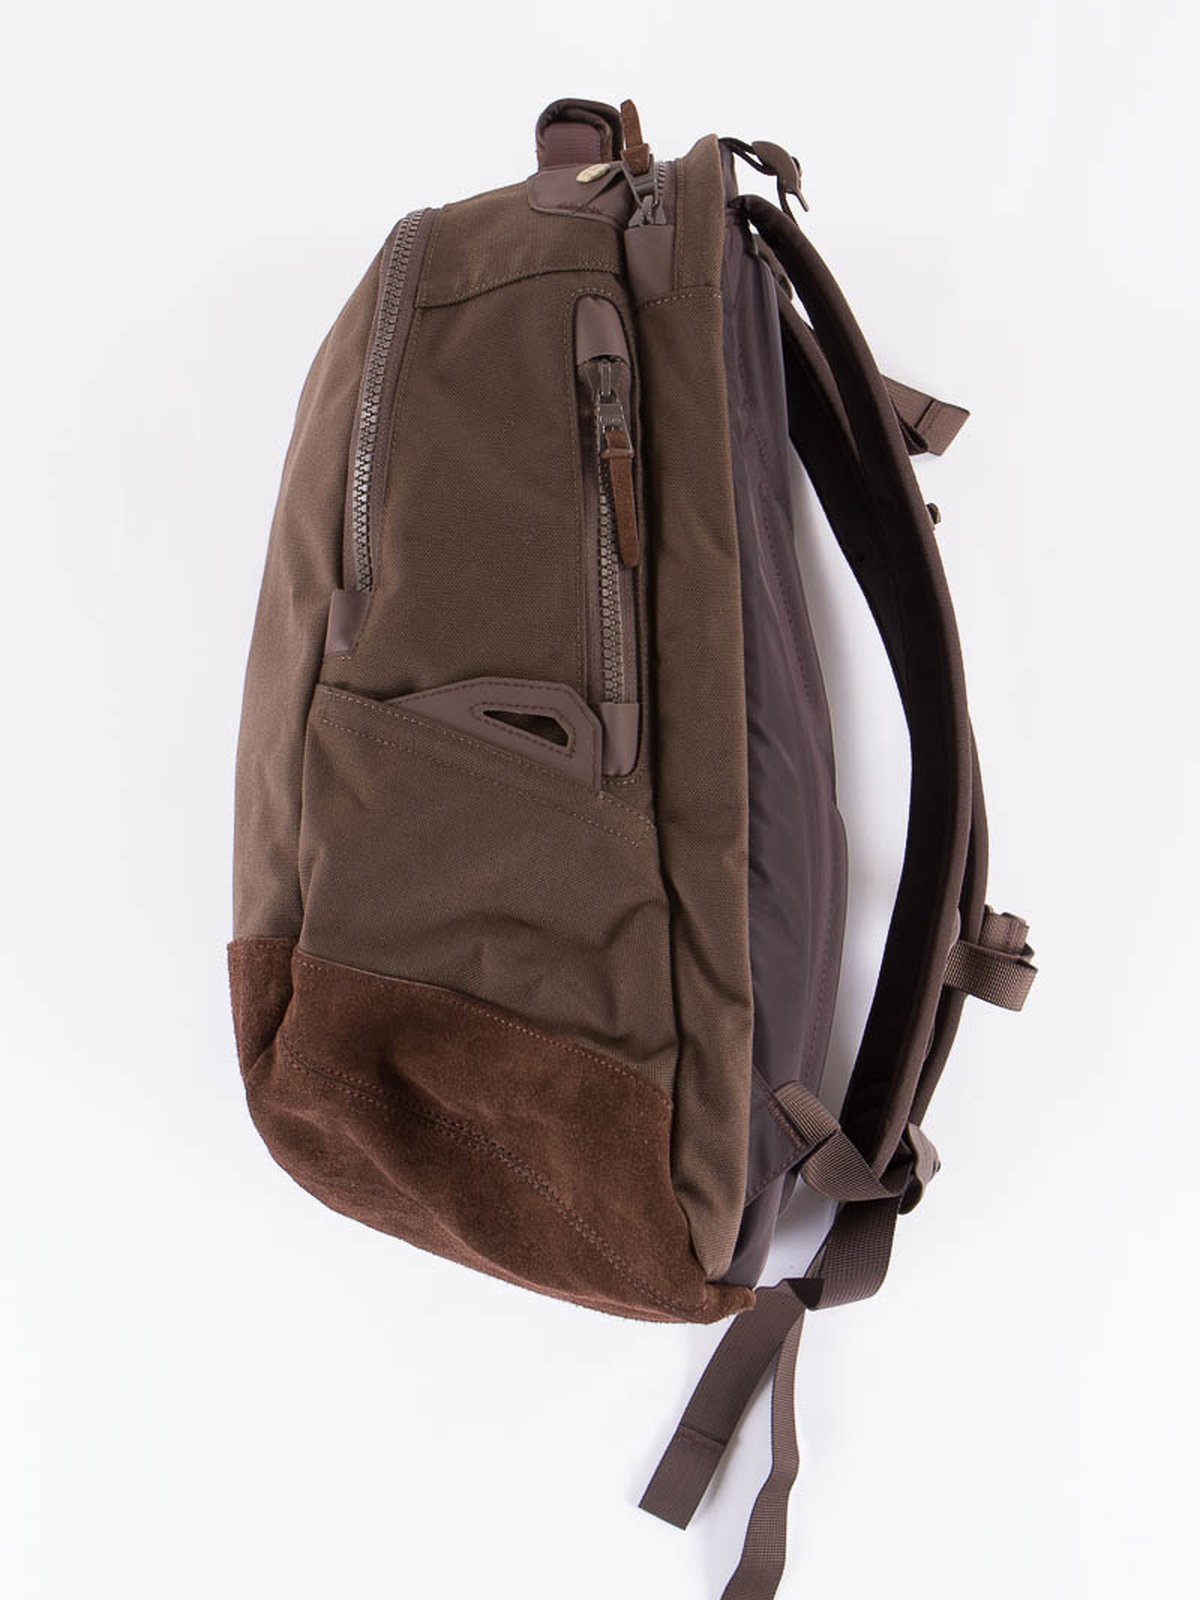 Brown 20L Ballistic Backpack - Image 4